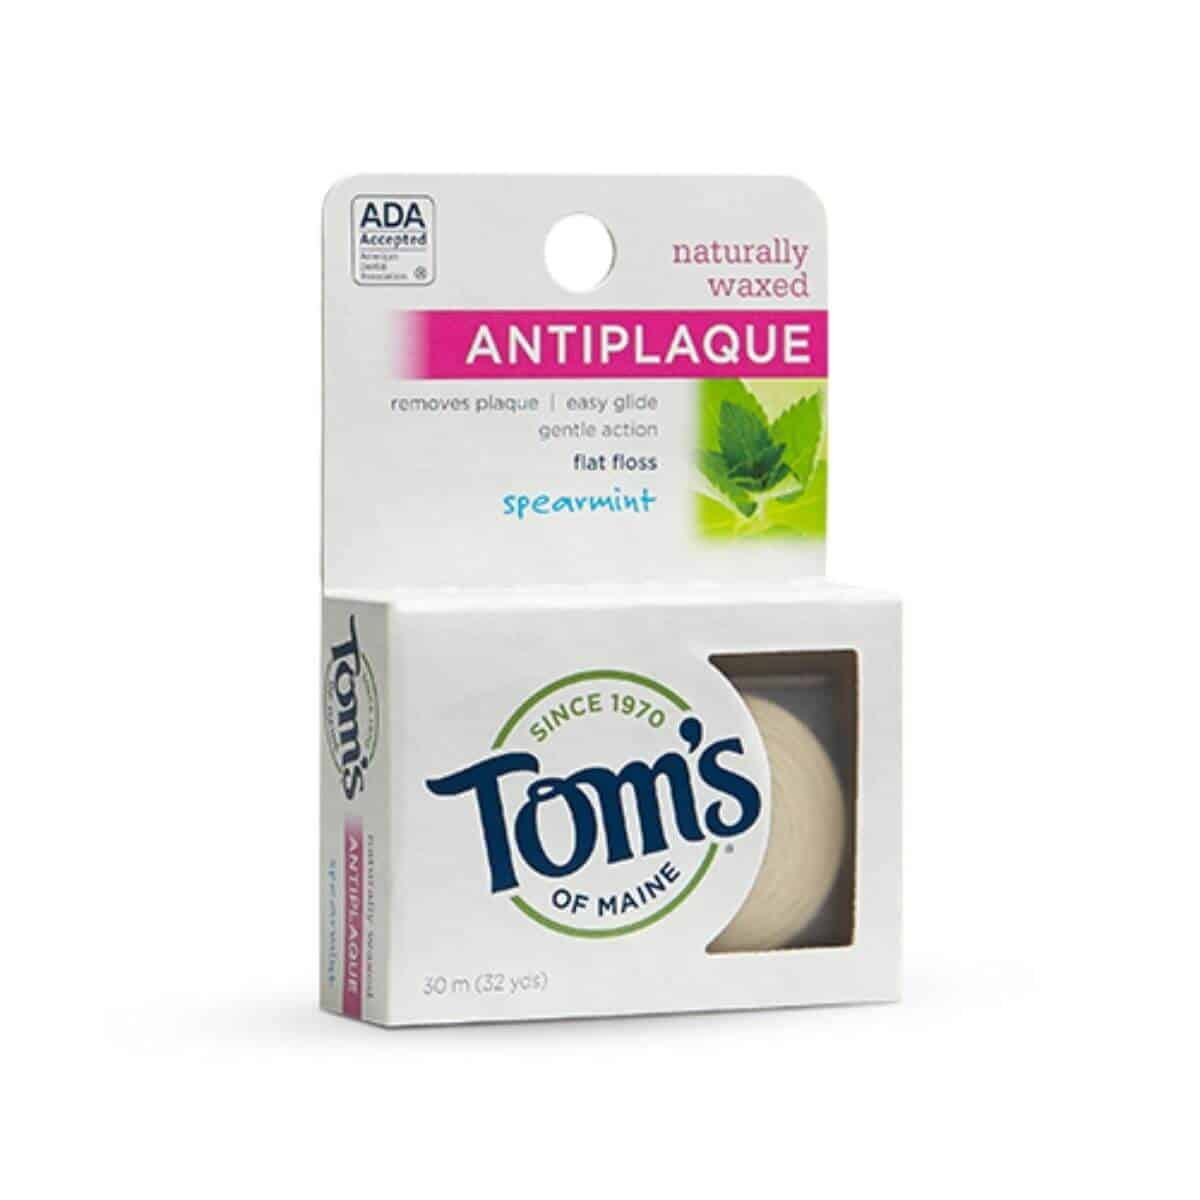 Tom's of Maine floss in its packaging.